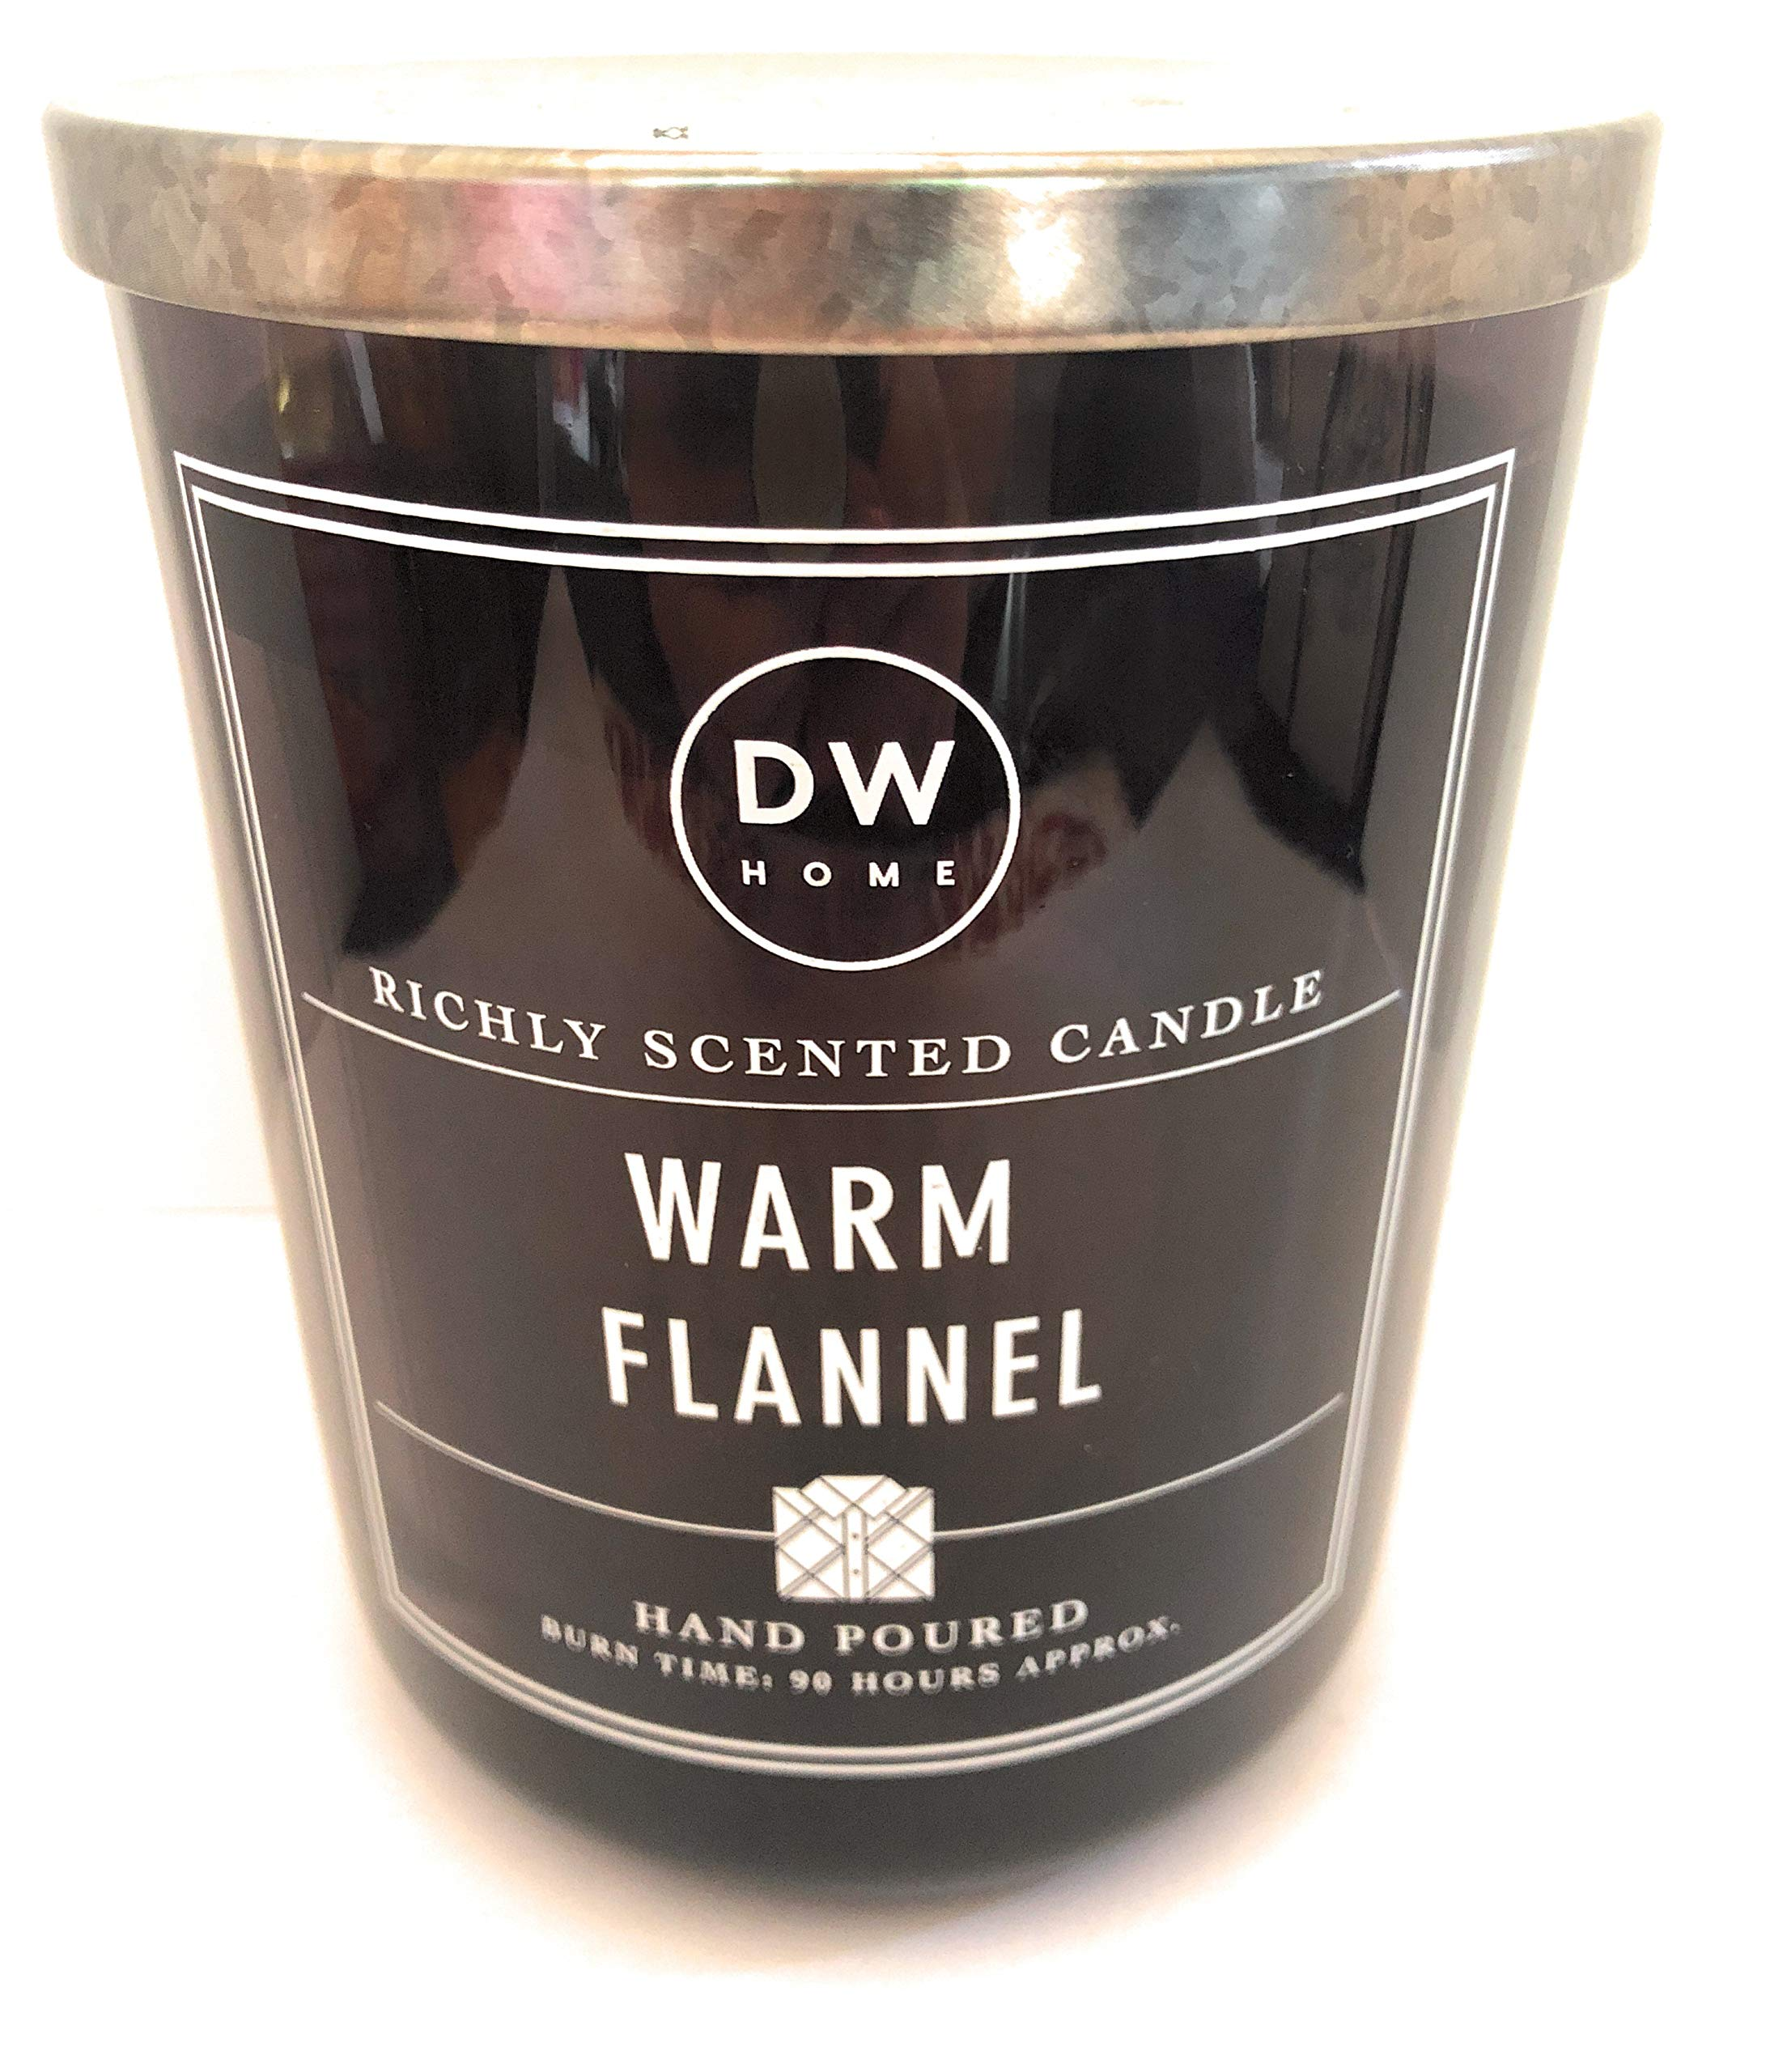 DW Home Warm Flannel Hand Poured Candle with Lid 26.3 Oz